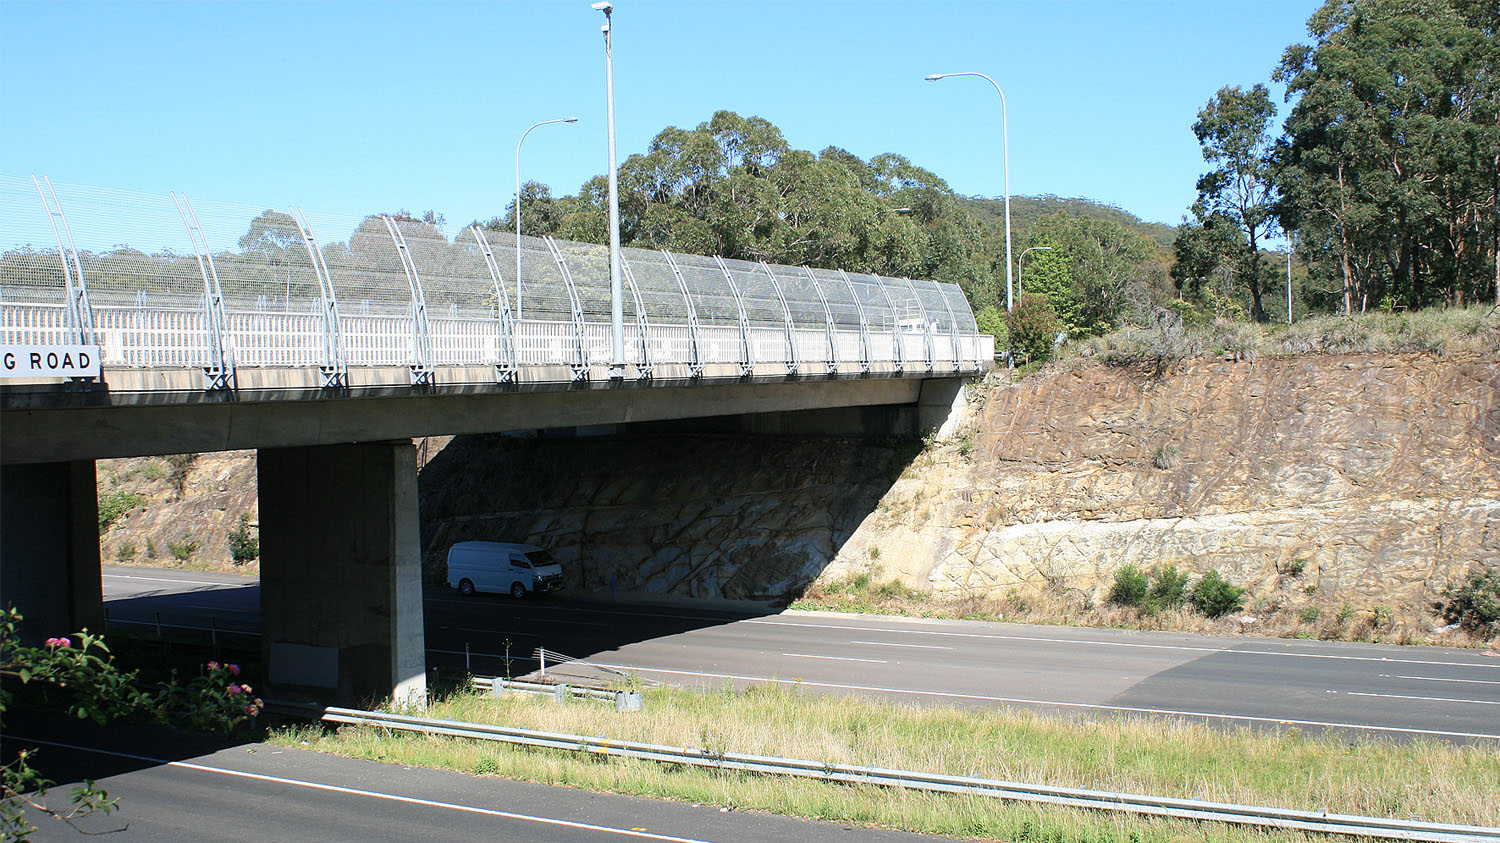 5-the-Wyong-Road-overpass.jpg